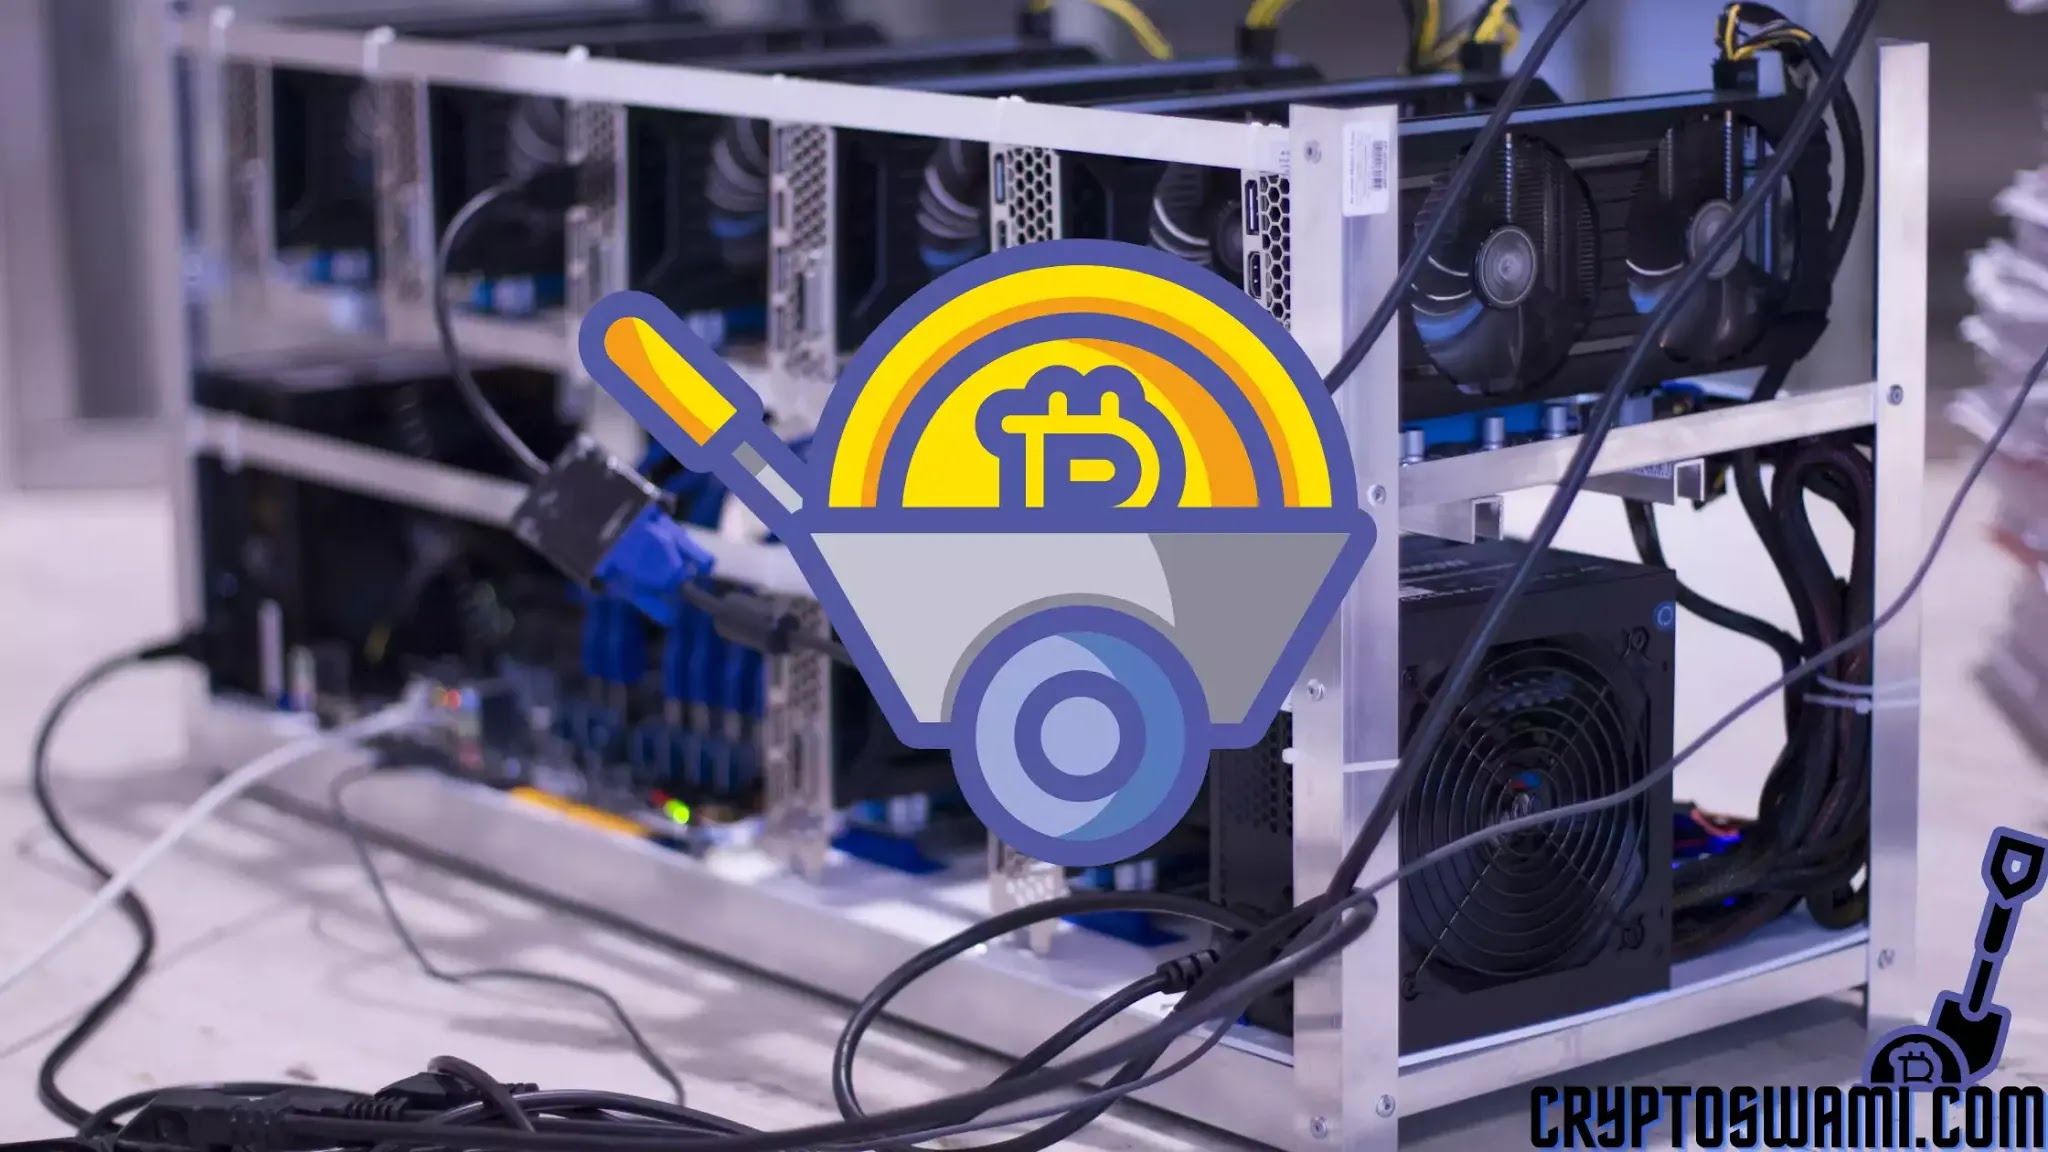 10 Crypto Mining Pools - Know Everything About Crypto Mining